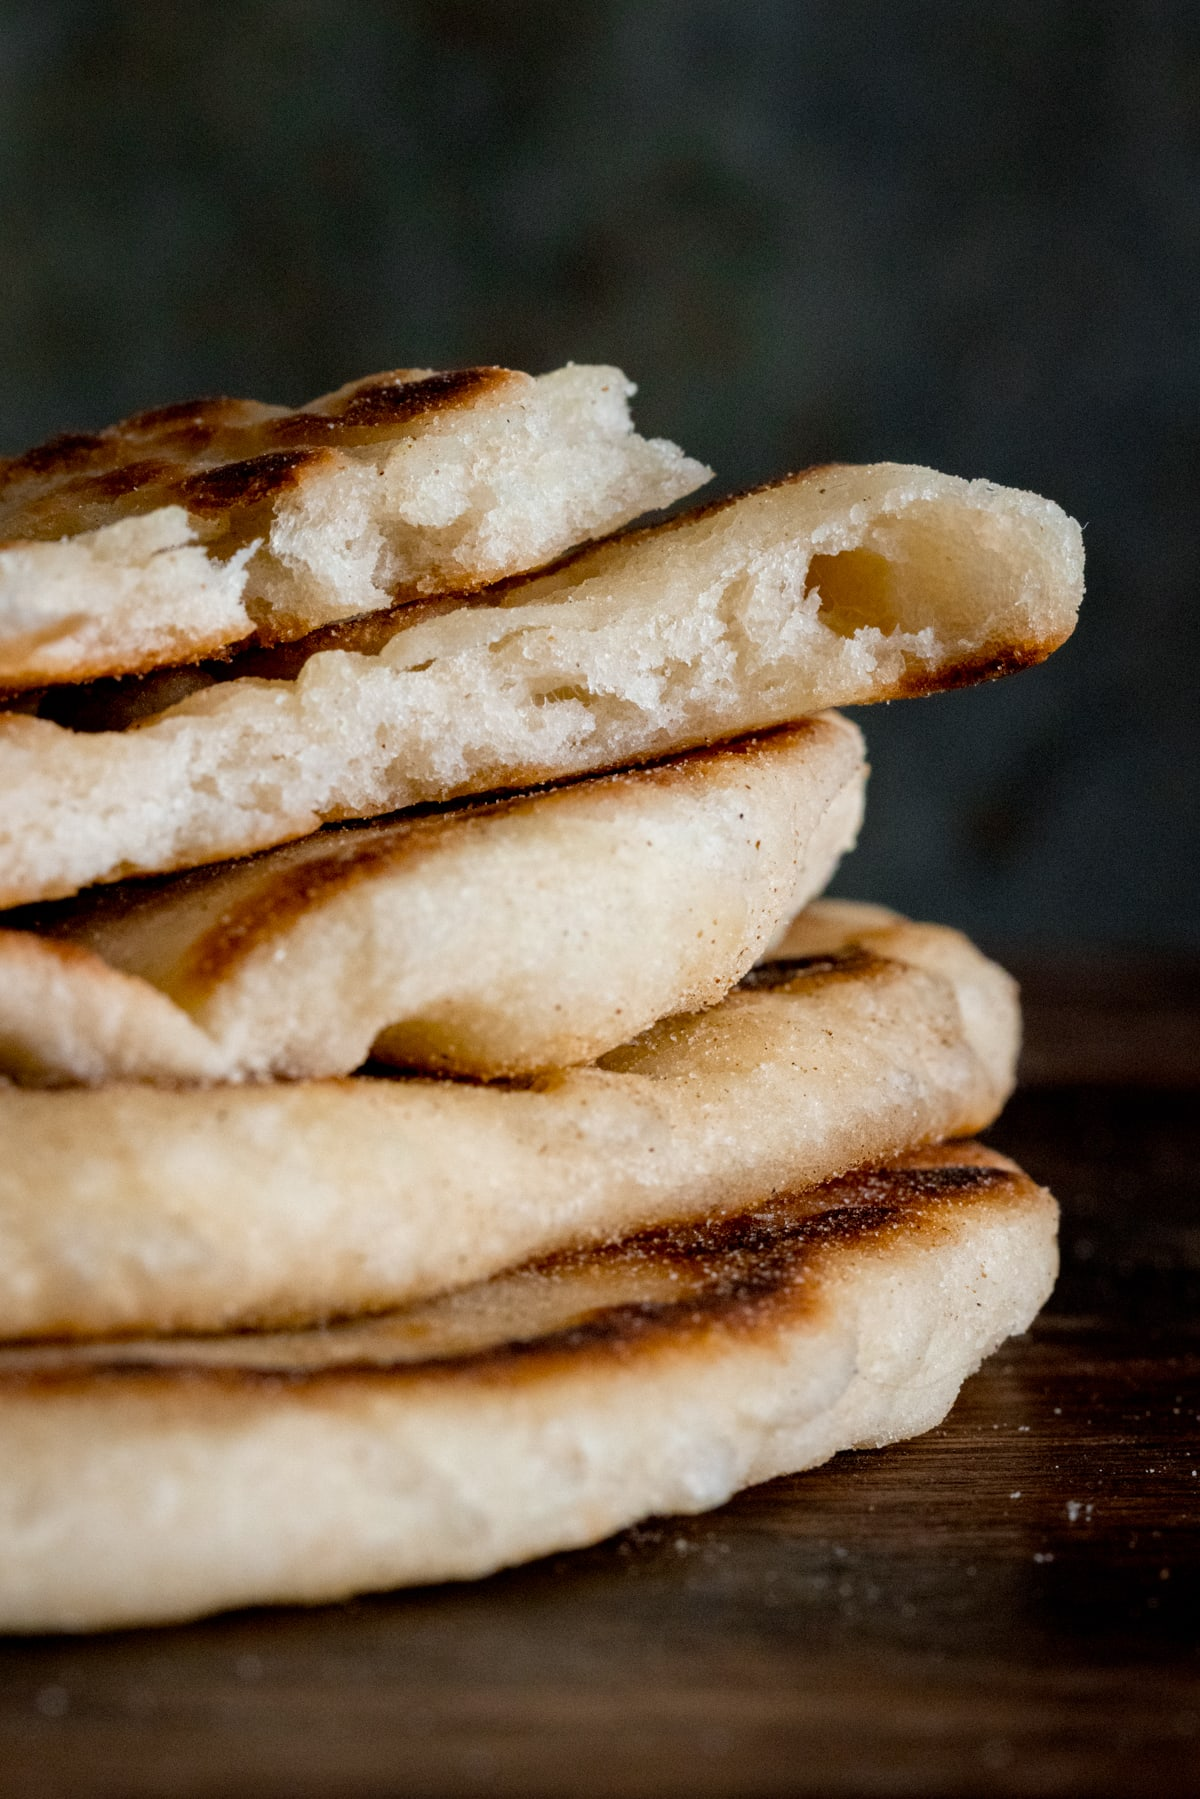 Close up a stack of flatbreads against a dark surface